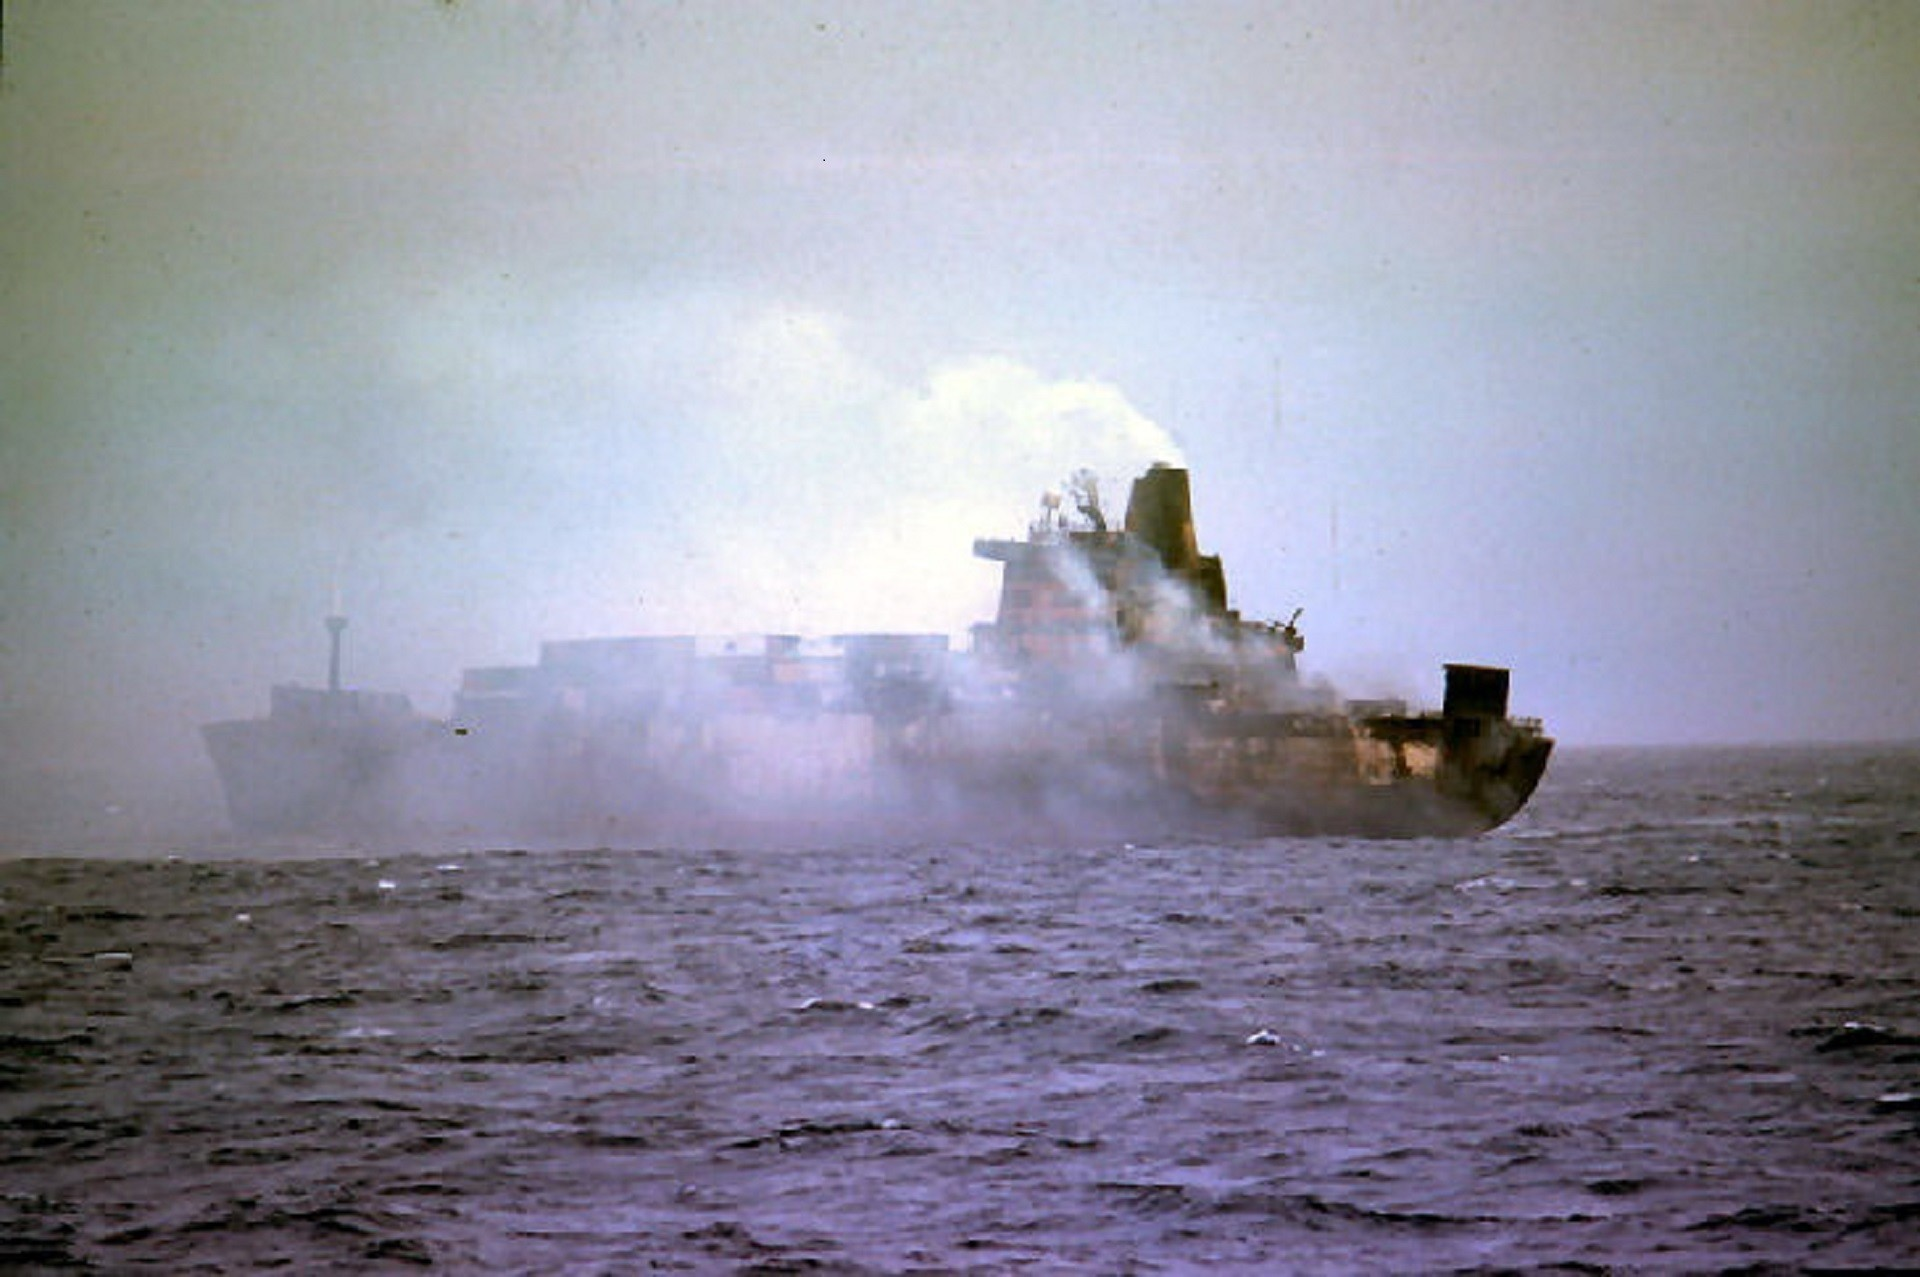 The Atlantic Conveyor after being hit by missiles.